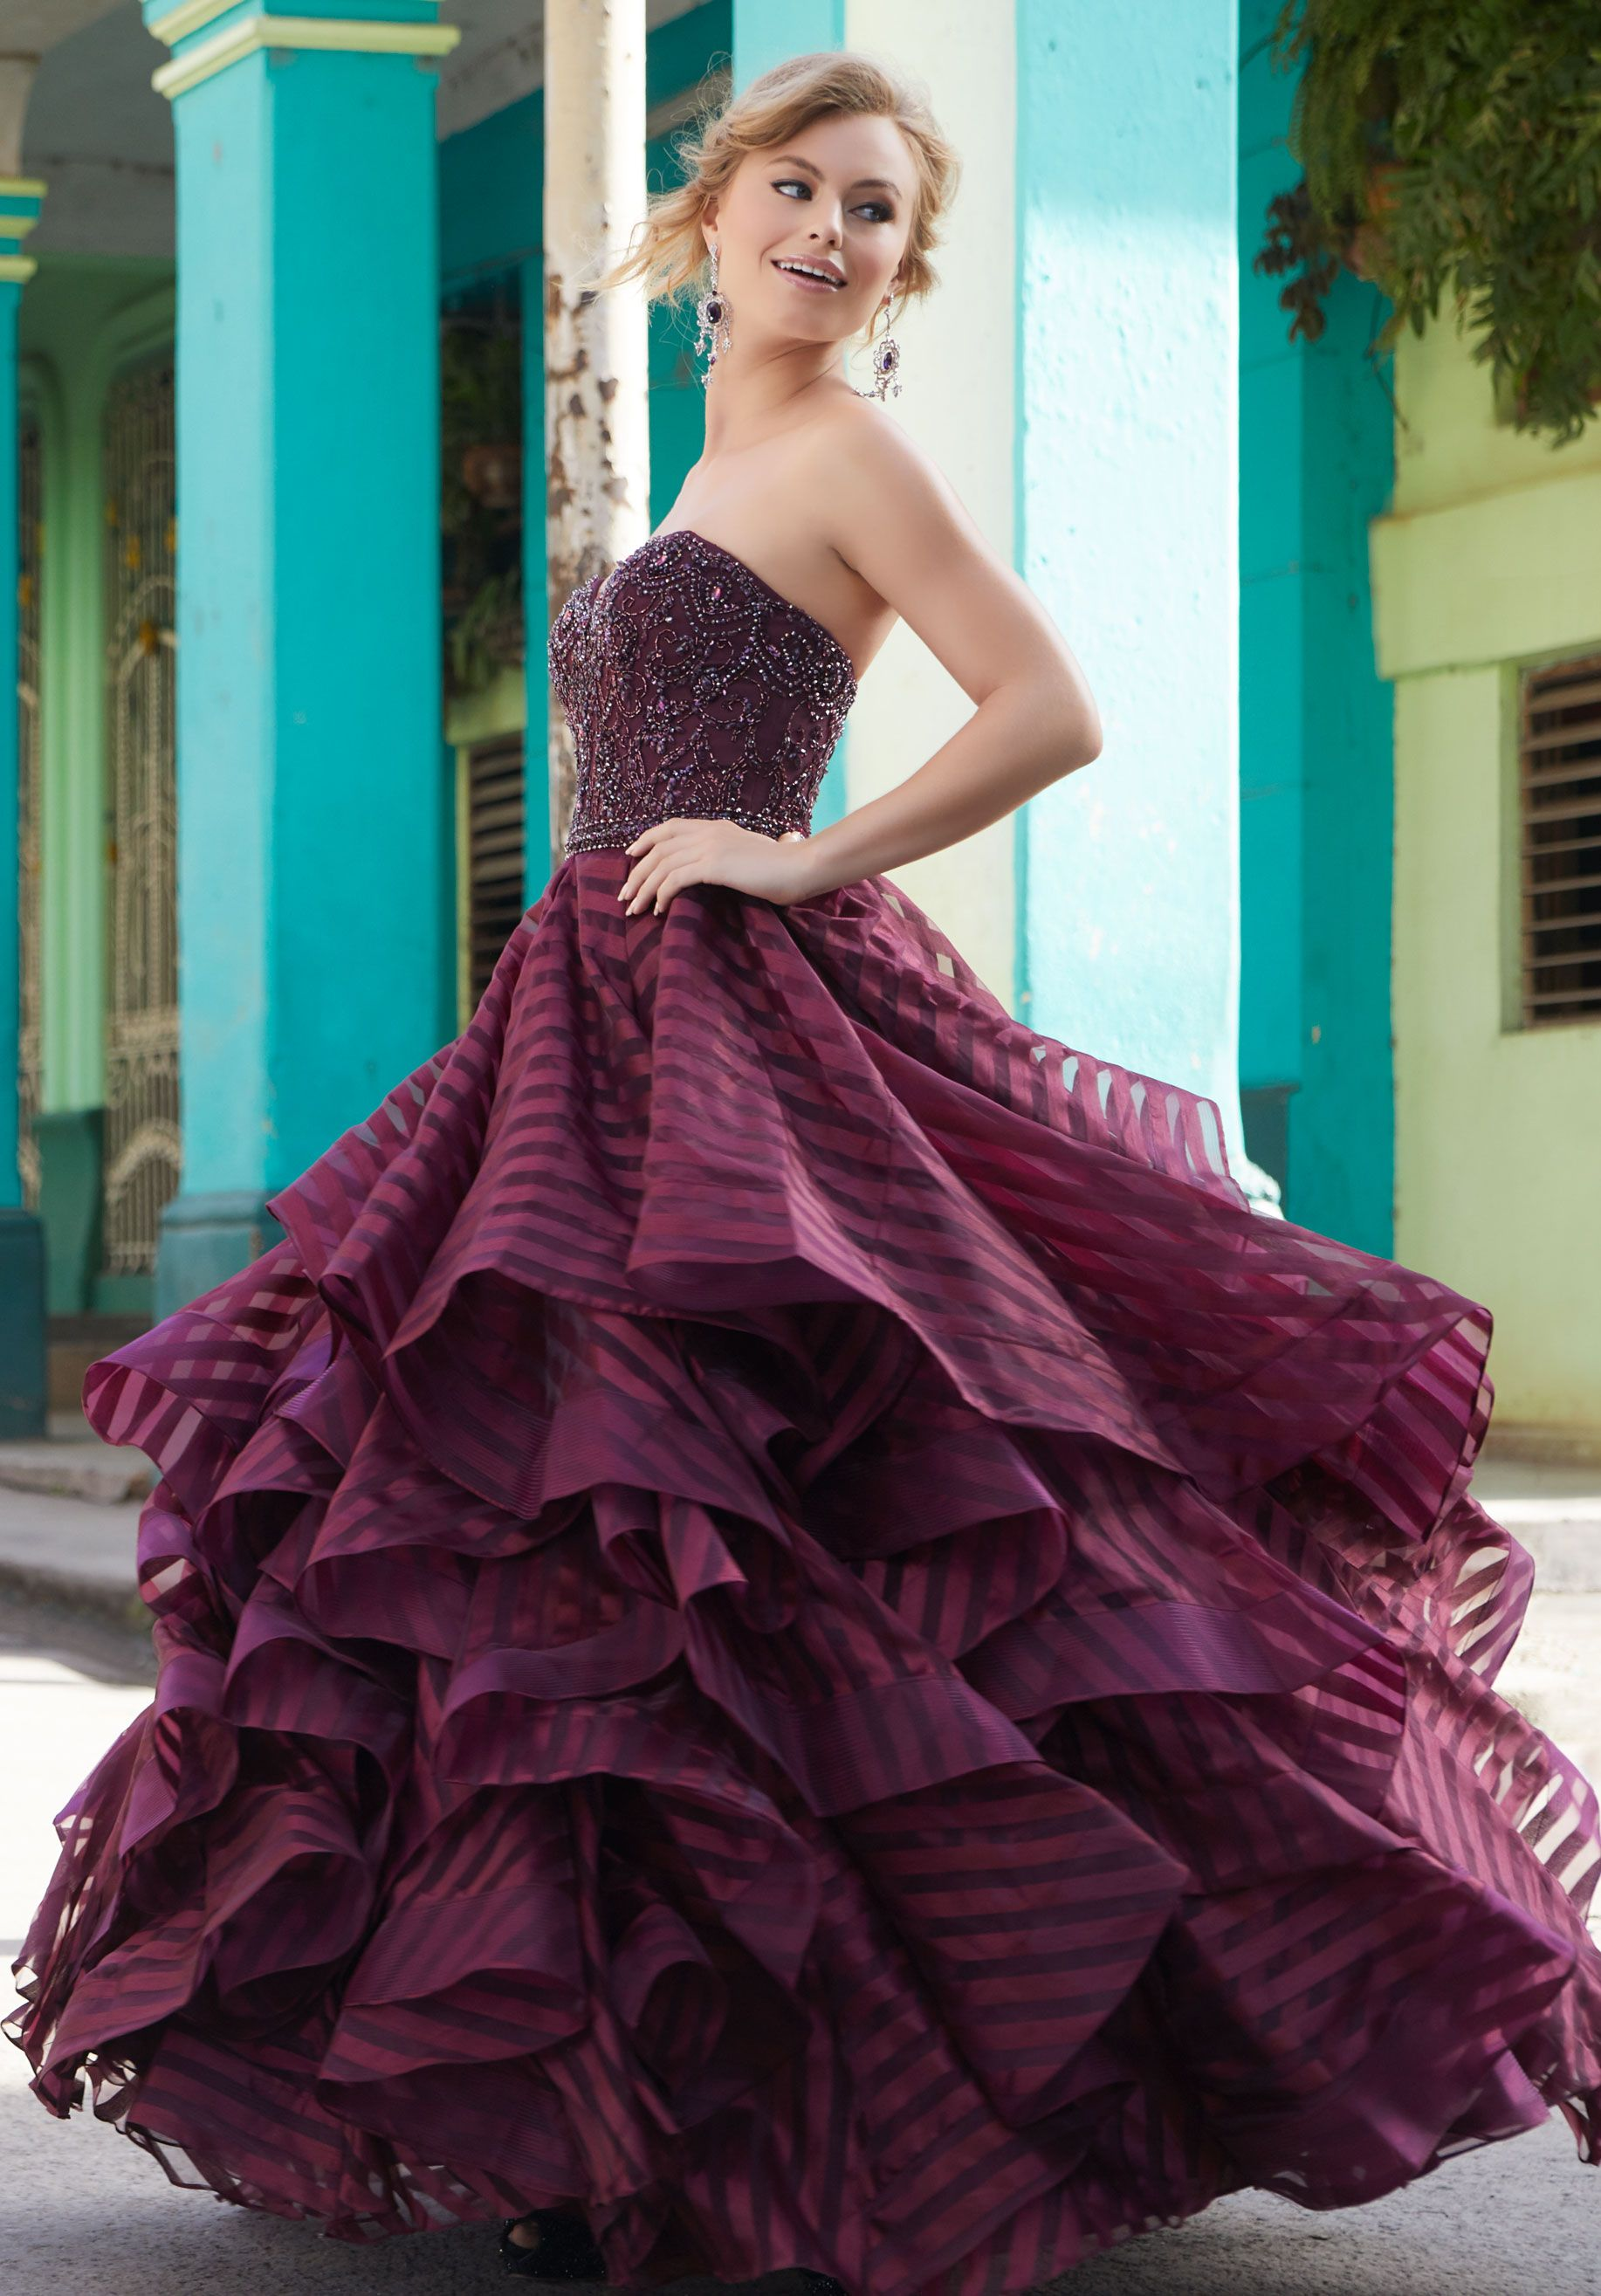 Morilee satin striped organza prom dress with a full flounced